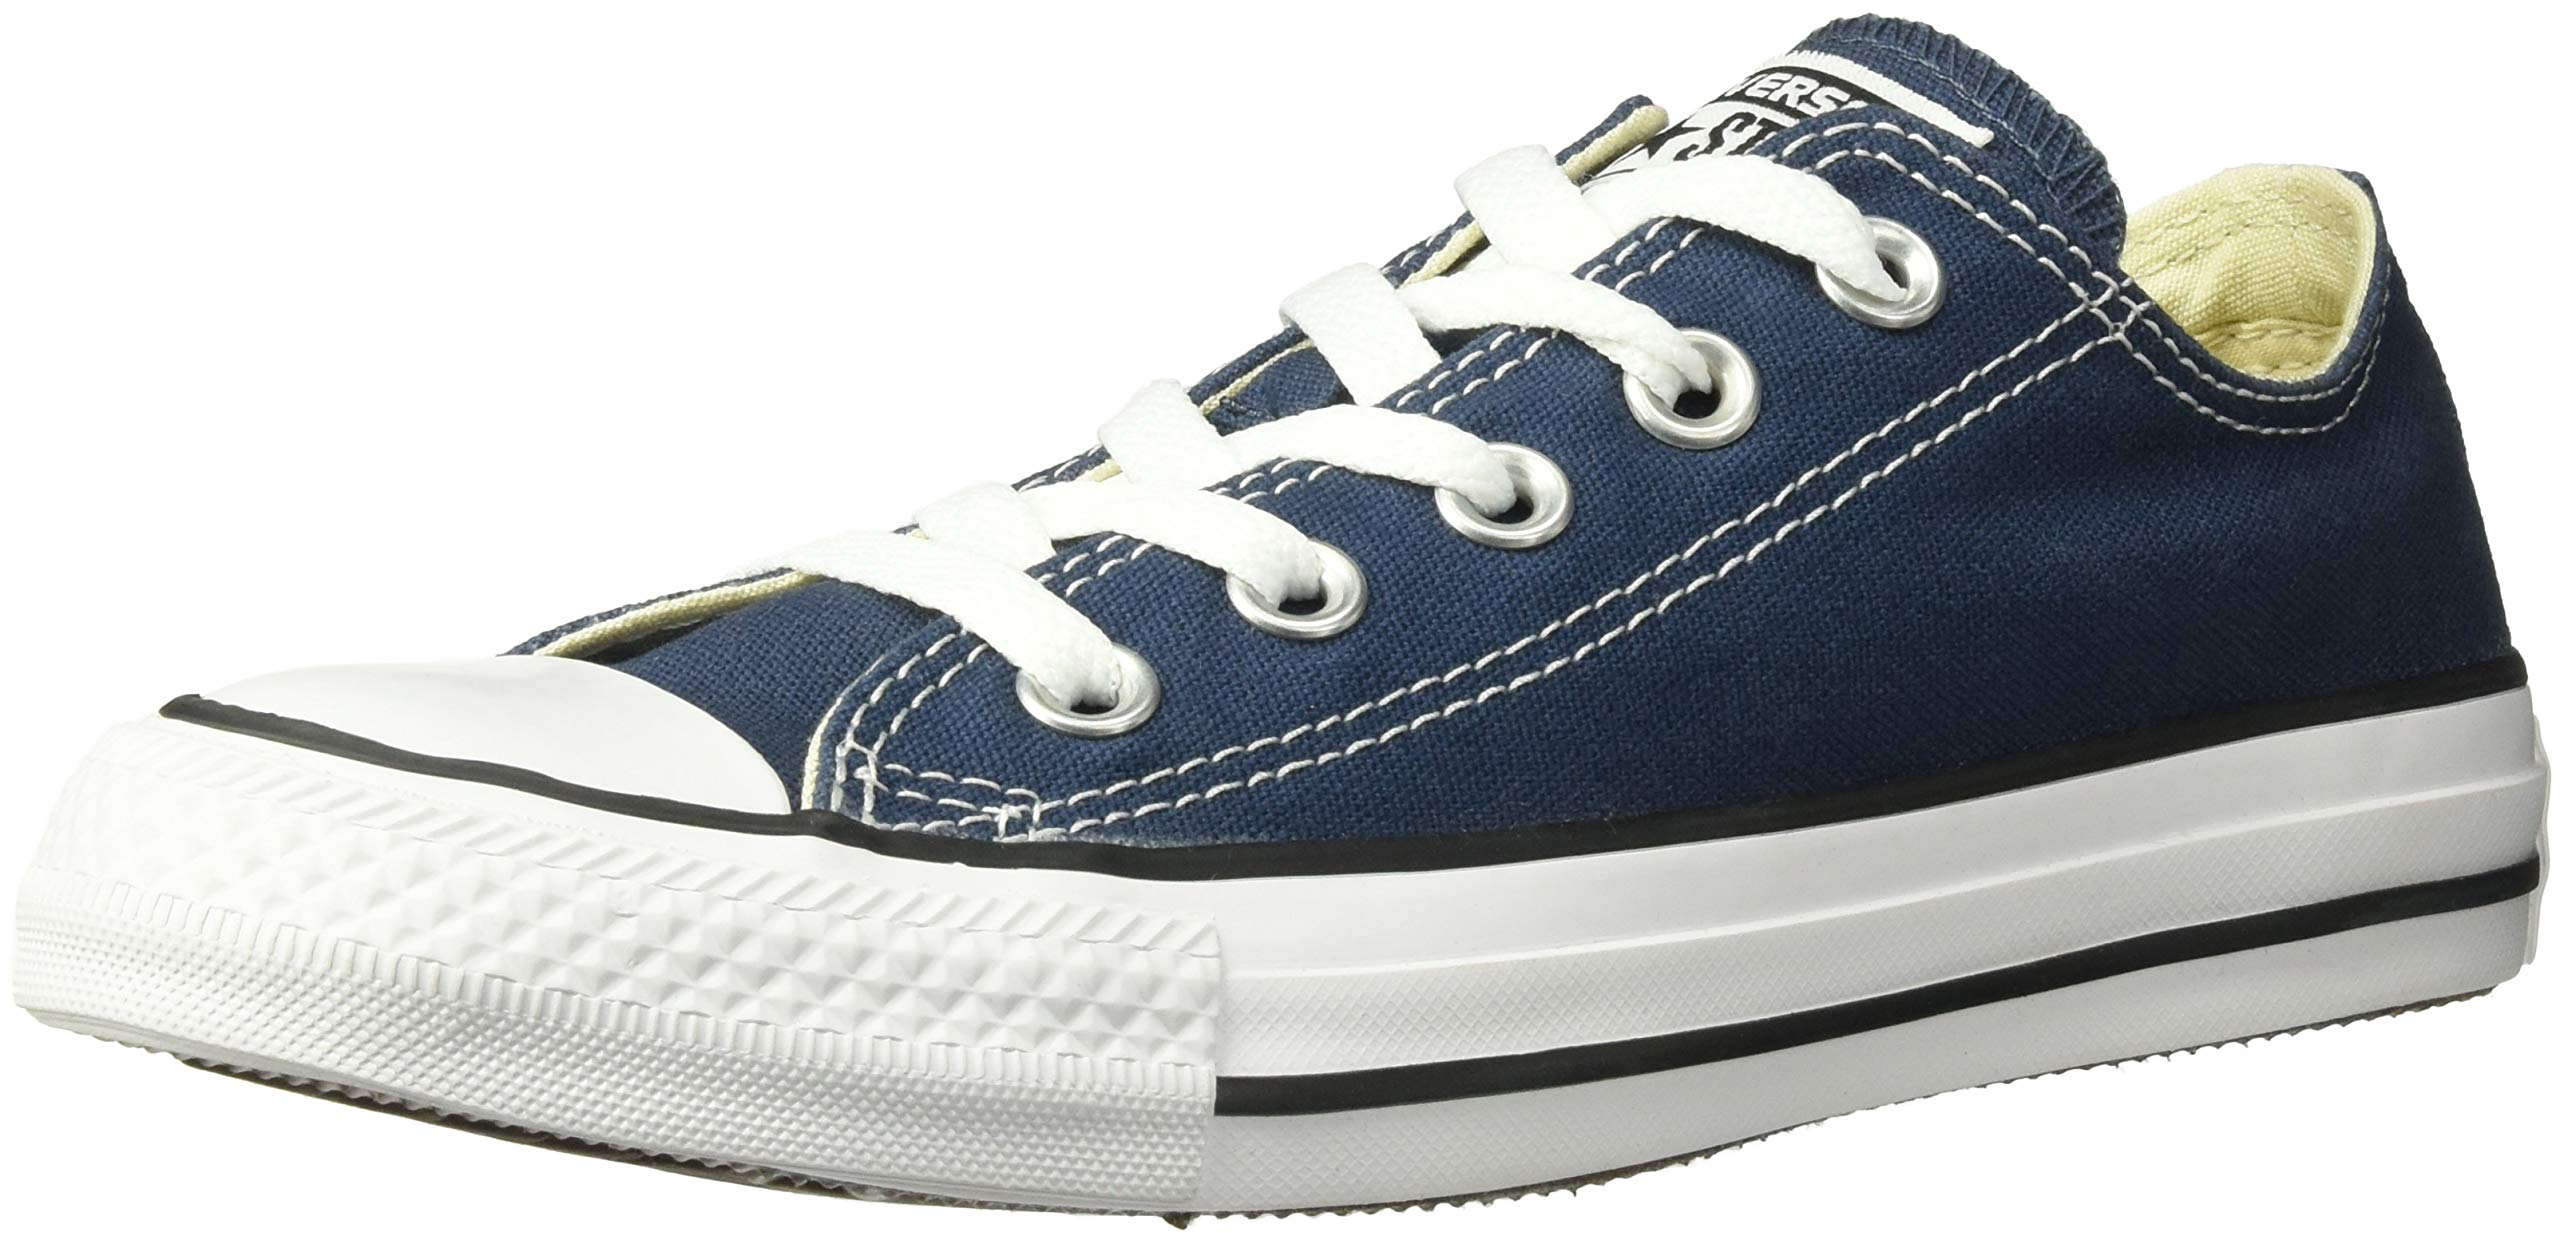 Converse Unisex Chuck Taylor All Star Low Top Navy Sneakers - 9.5 US Men/11.5 US Women by Converse